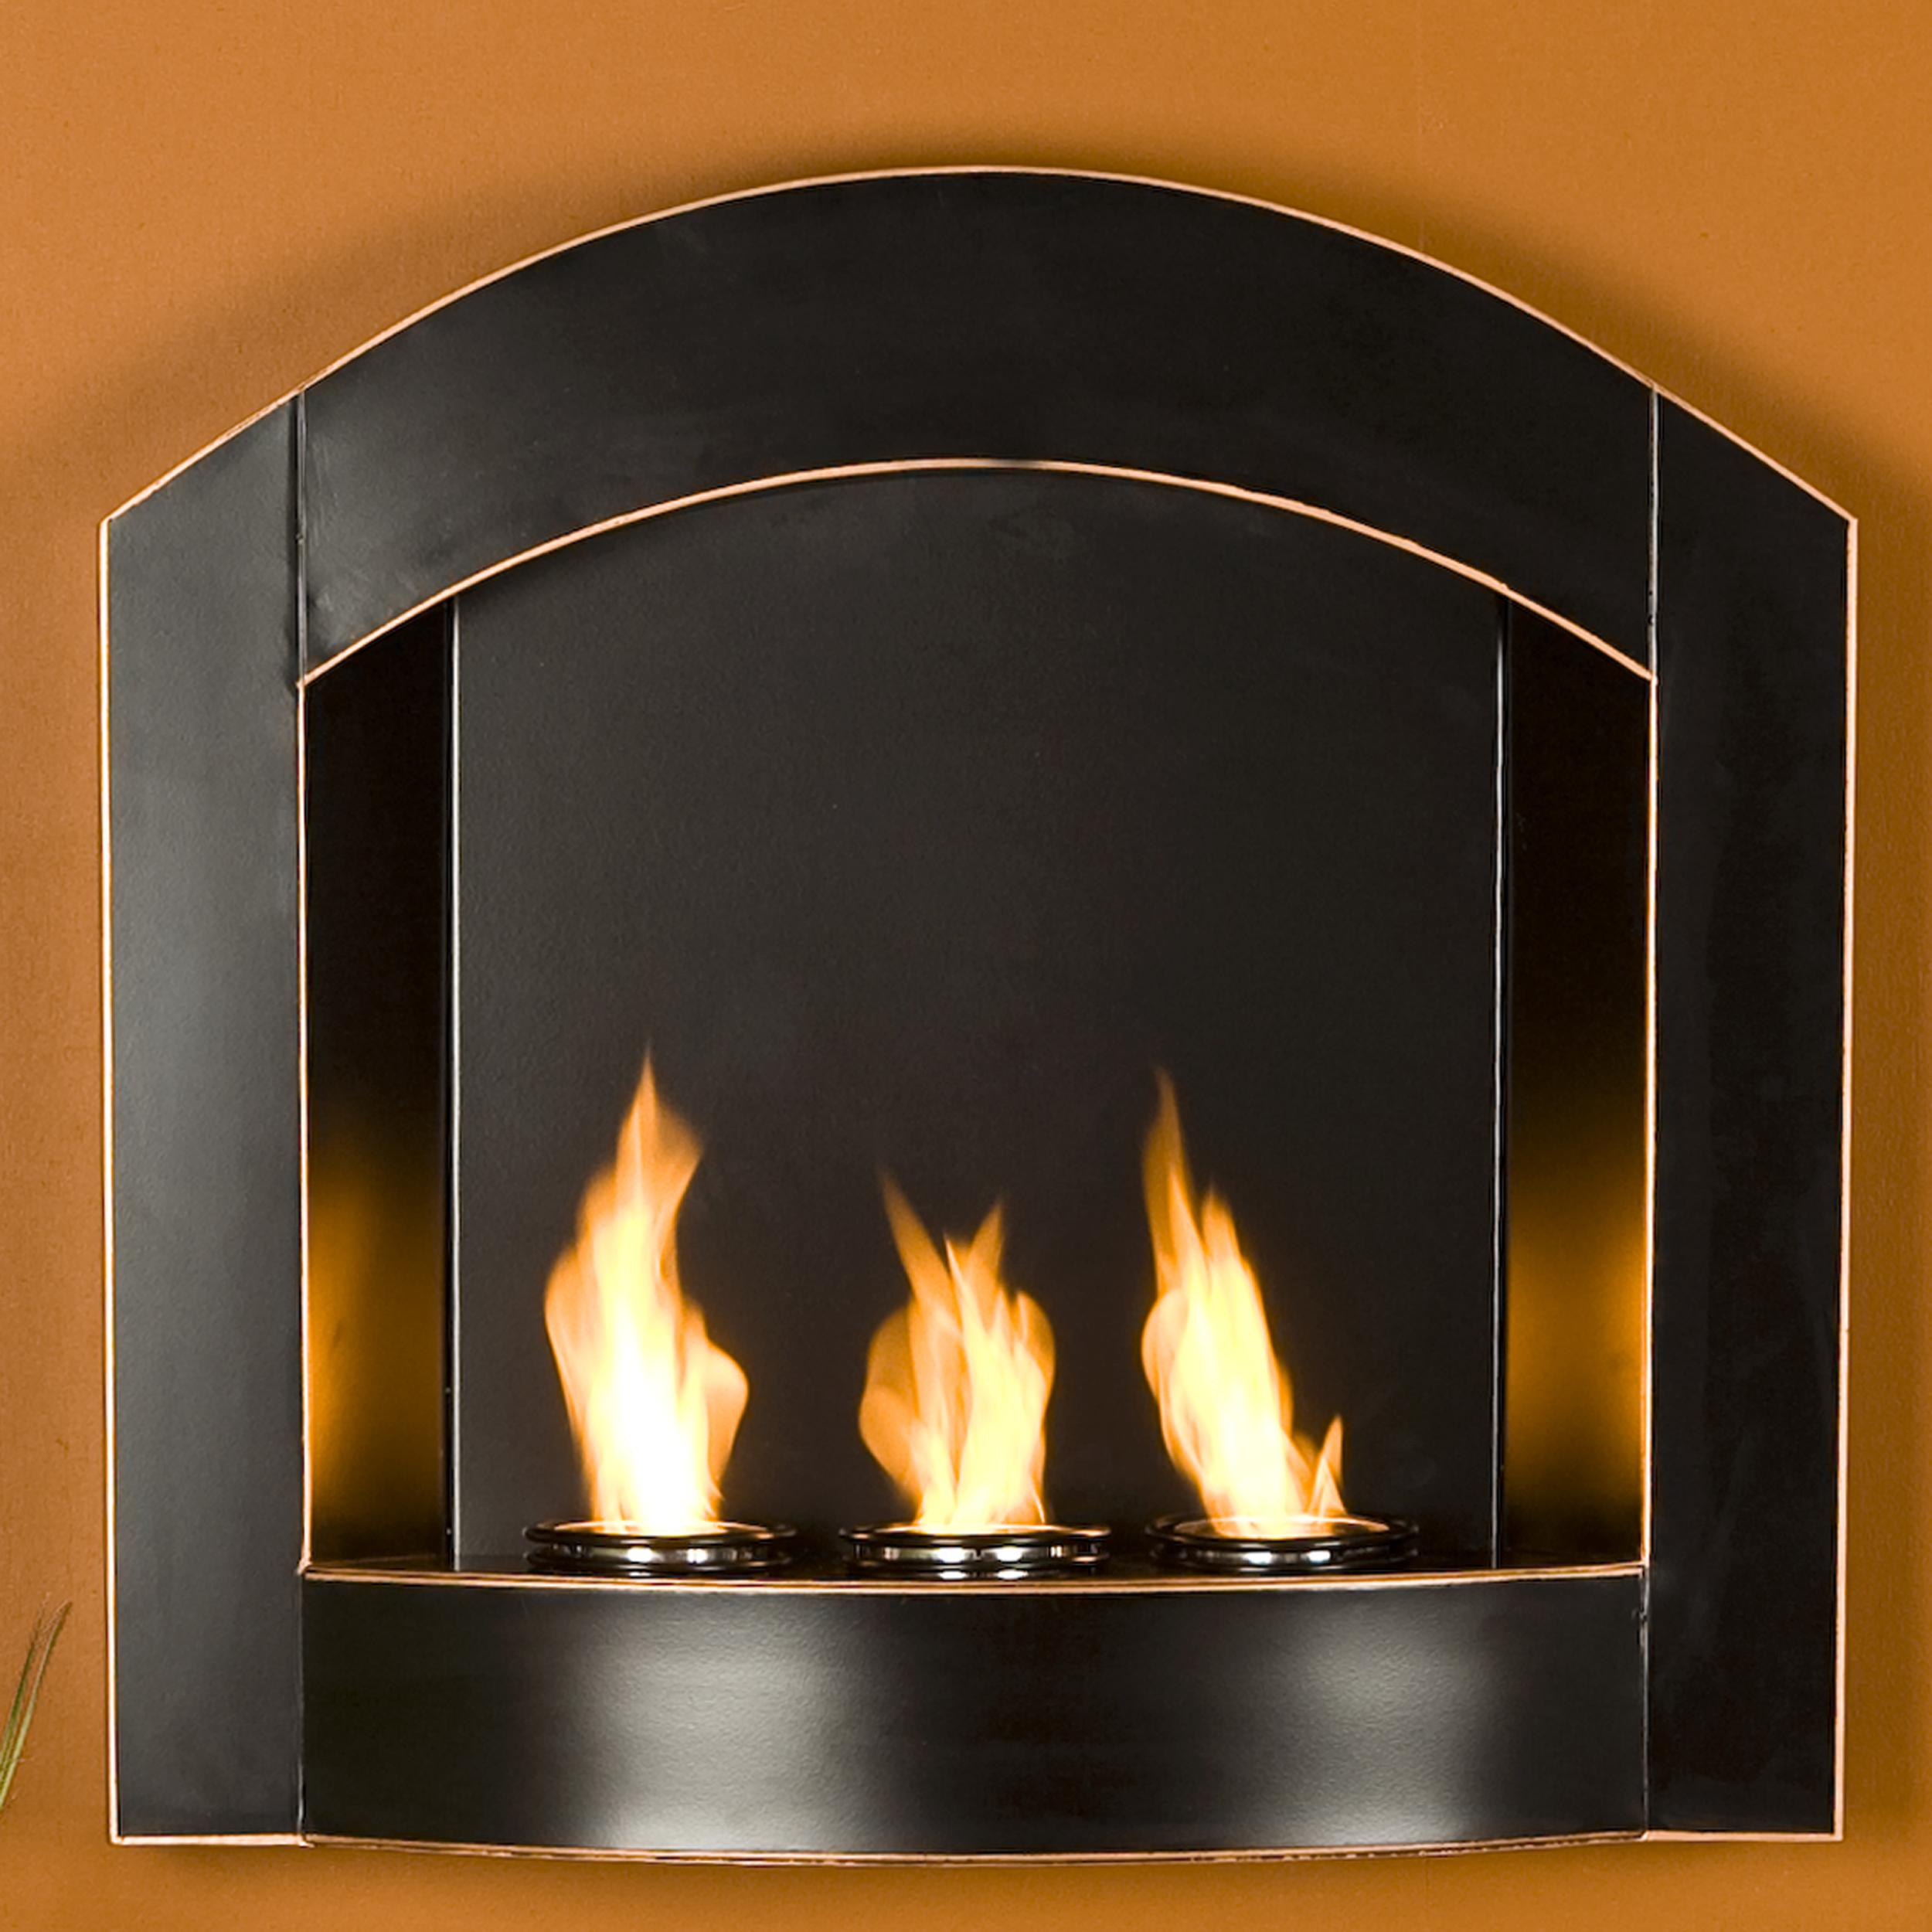 wall ventless austin fuel mounted fireplace p in recessed ethanol inch bio gel built